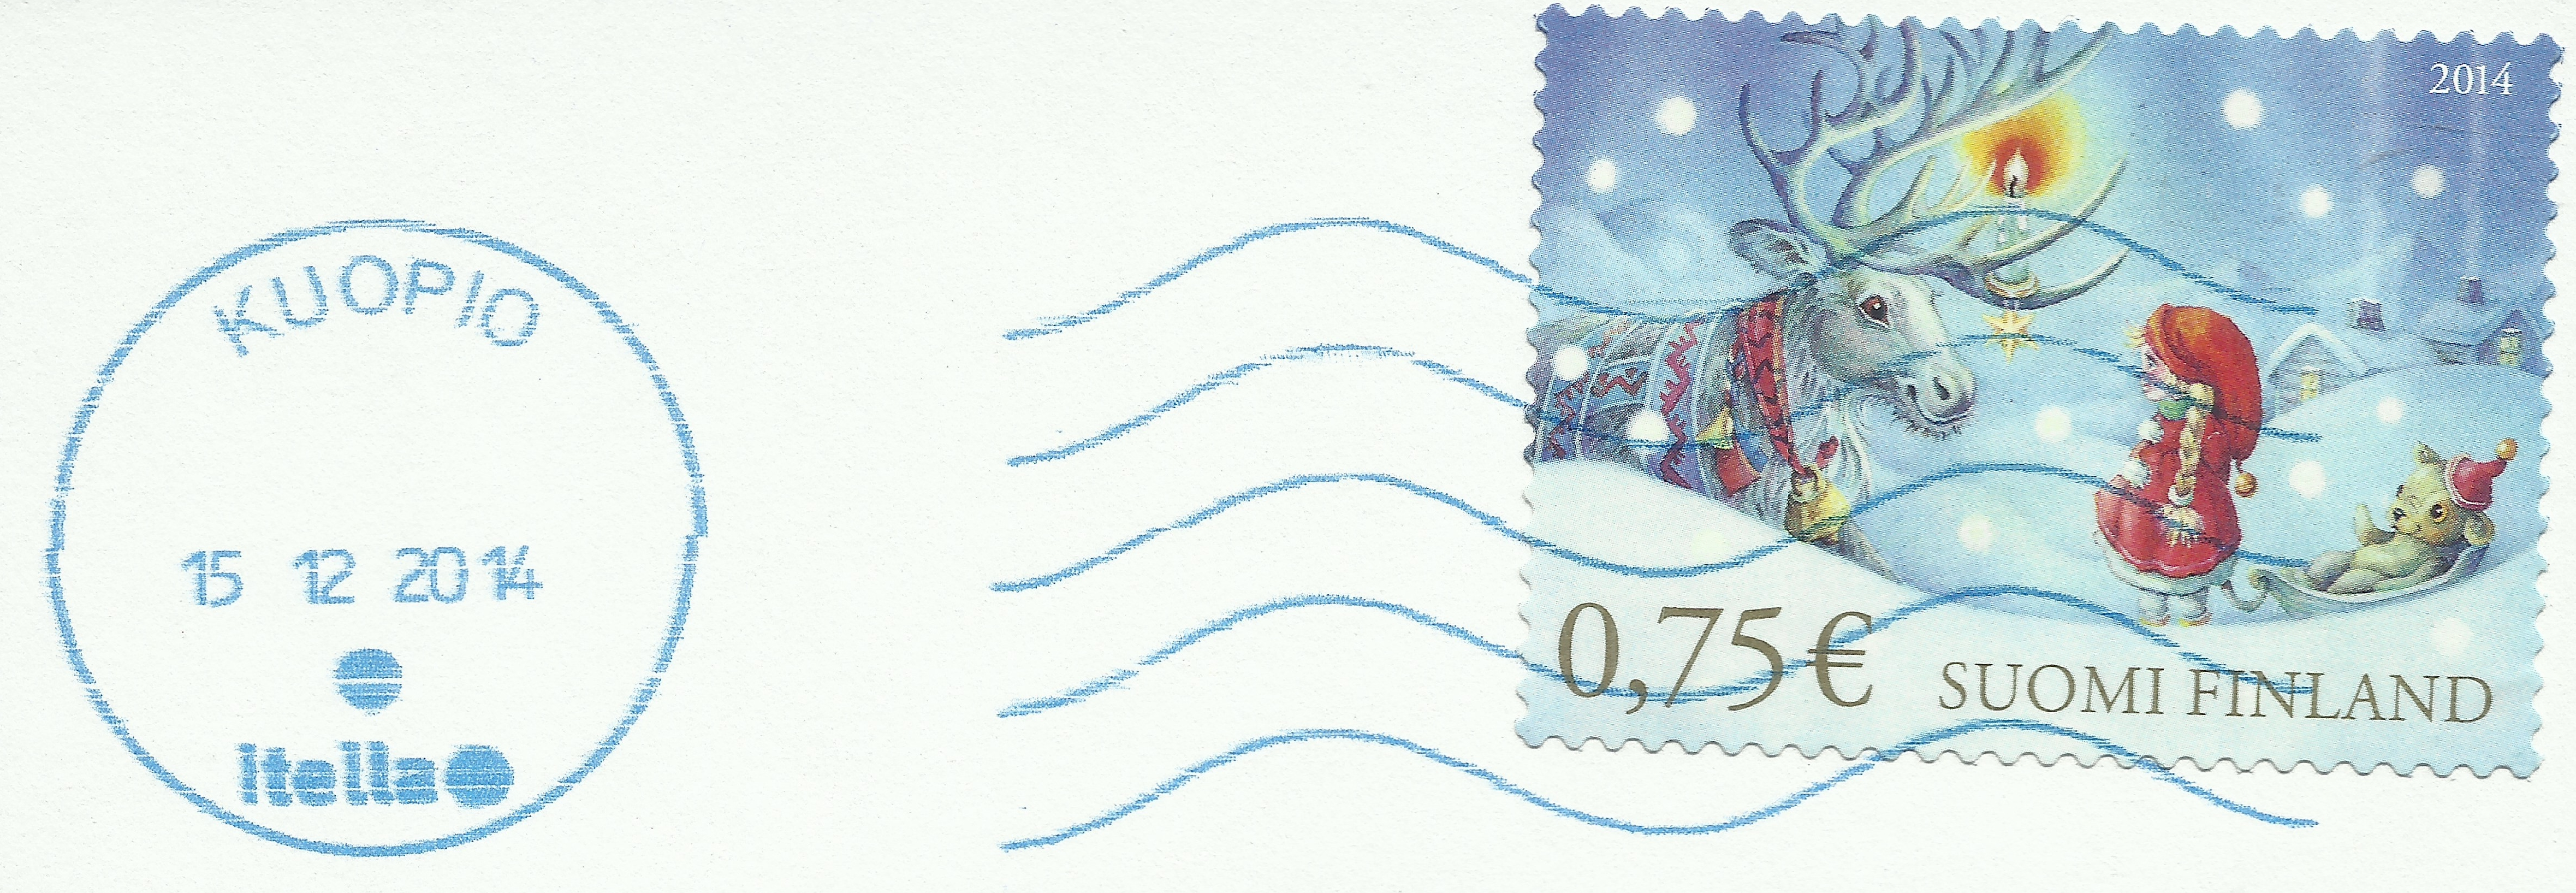 Finland - Scott #1479 (2014) with blue cancellation from Kuopio, the cultural center of Eastern Finland